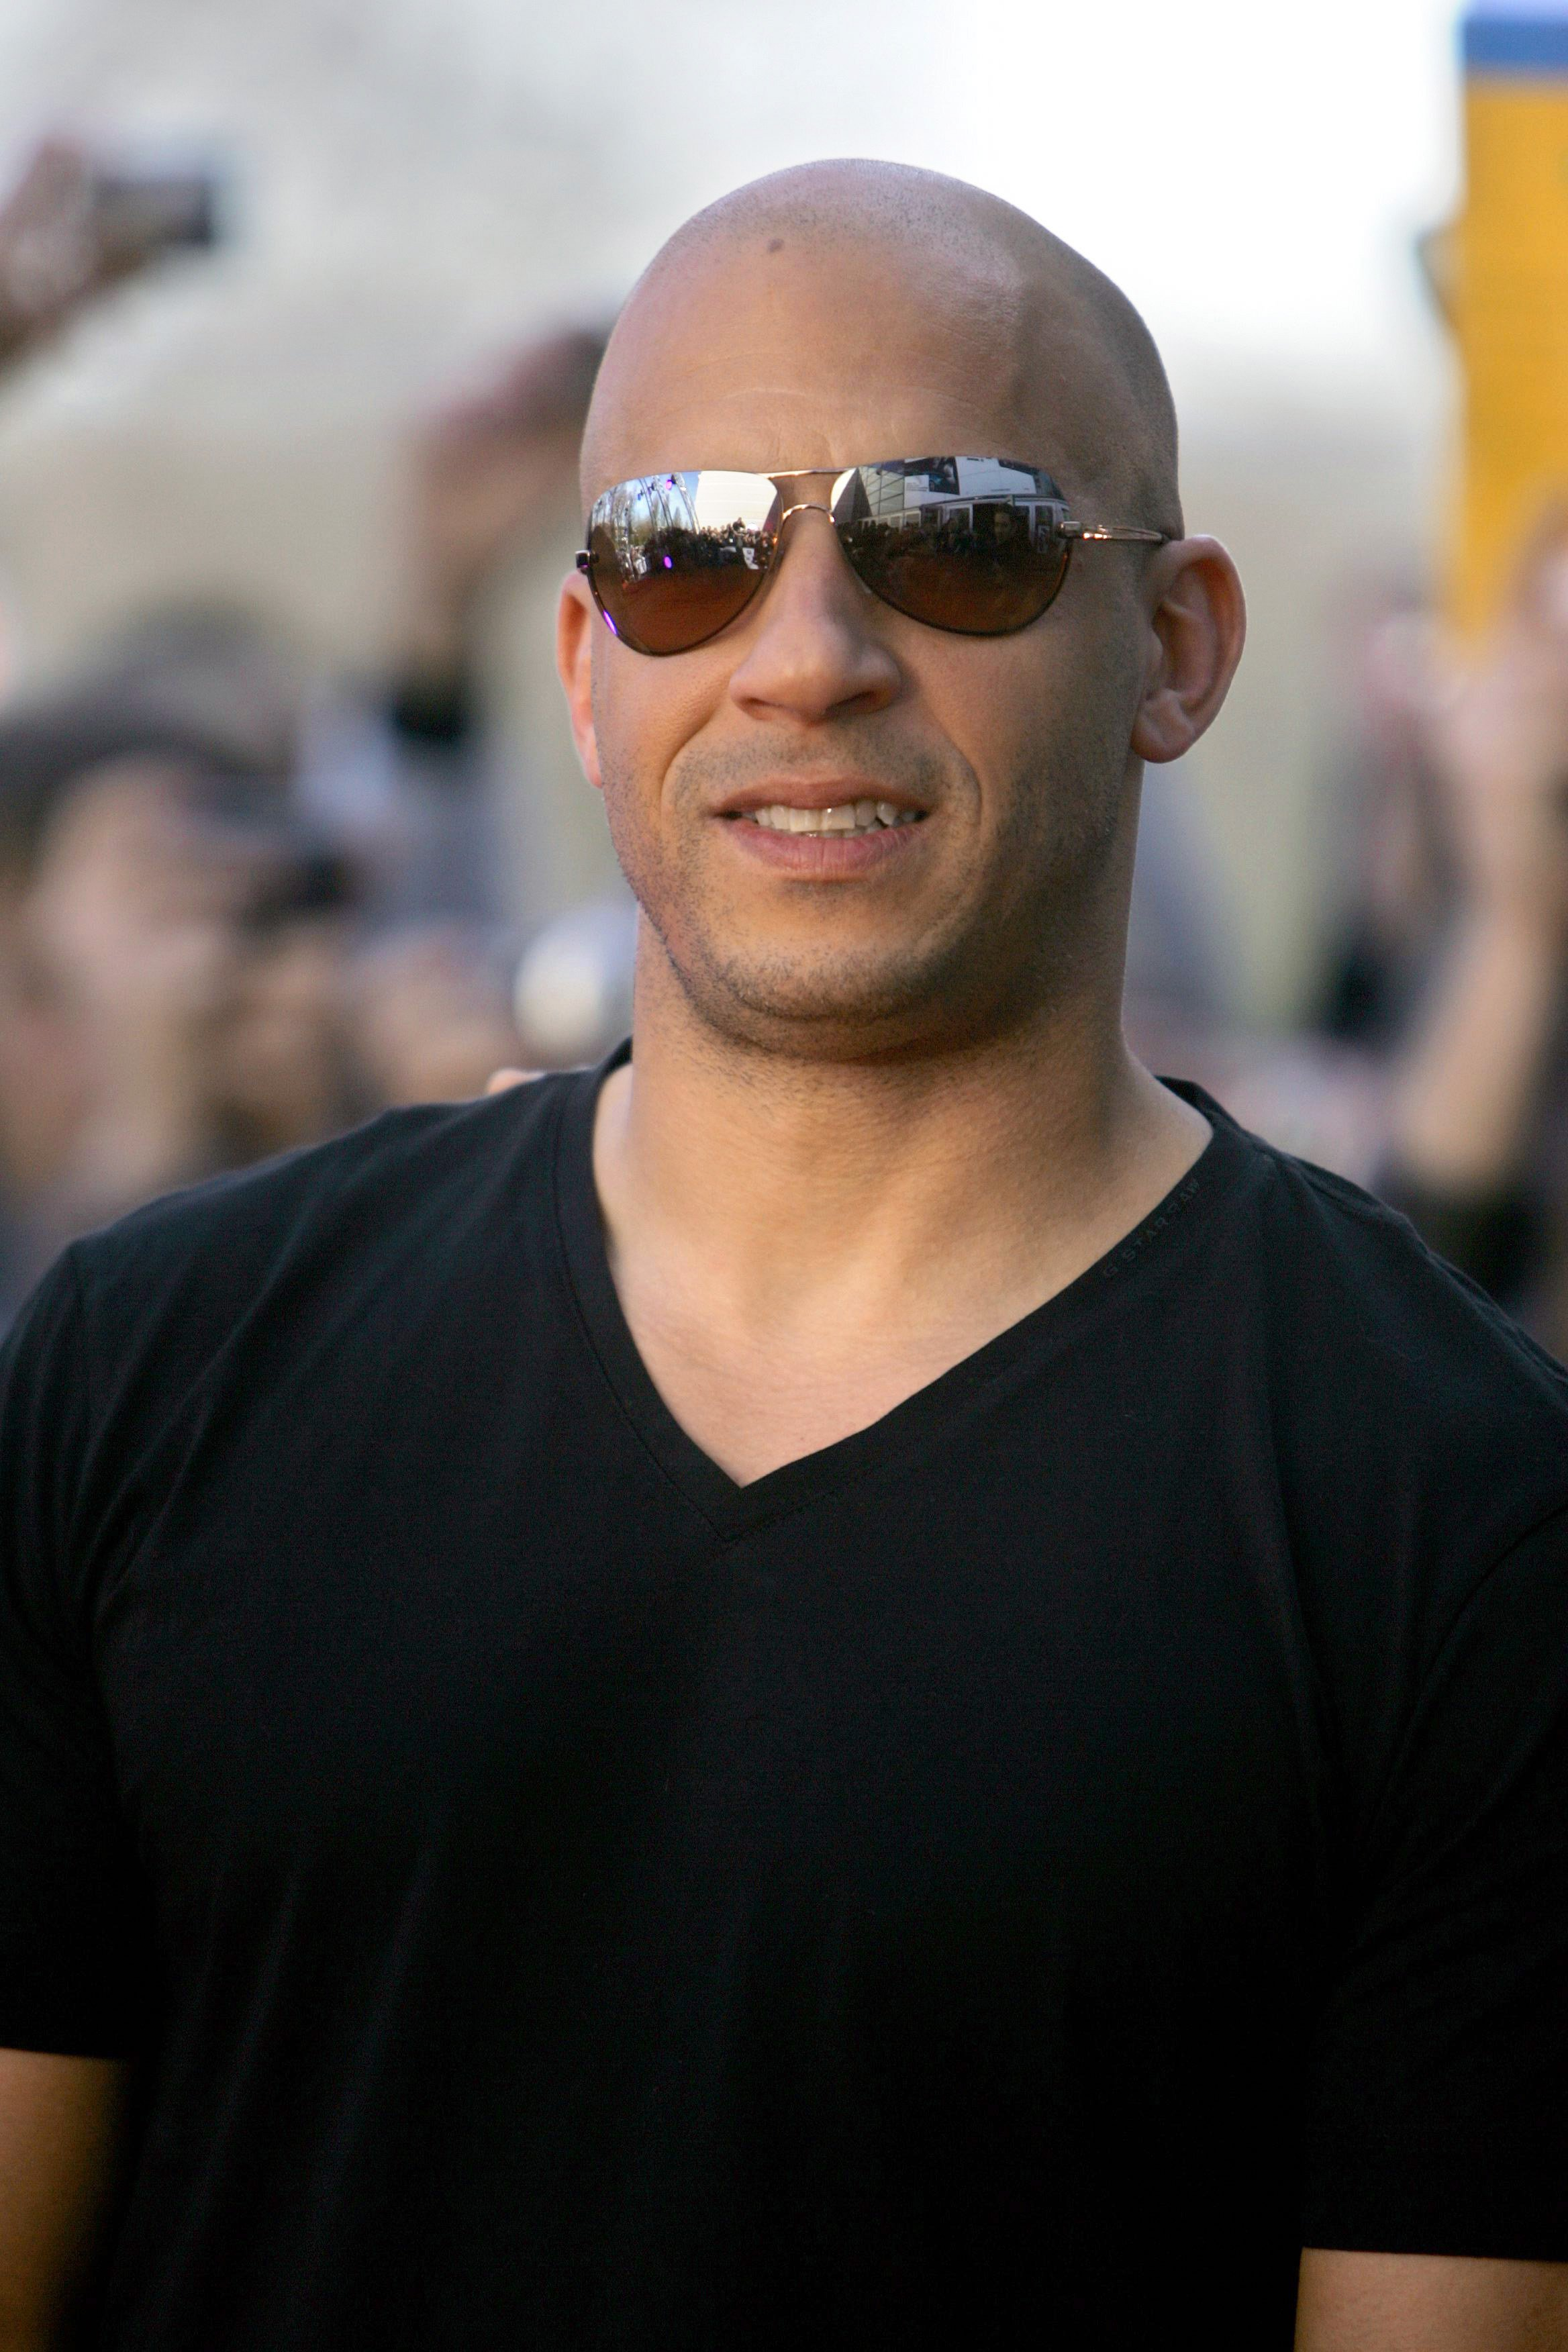 02817_Celebutopia-Vin_Diesel-Fast_7_Furious_French_premiere_in_Lille-02_122_1167lo.jpg